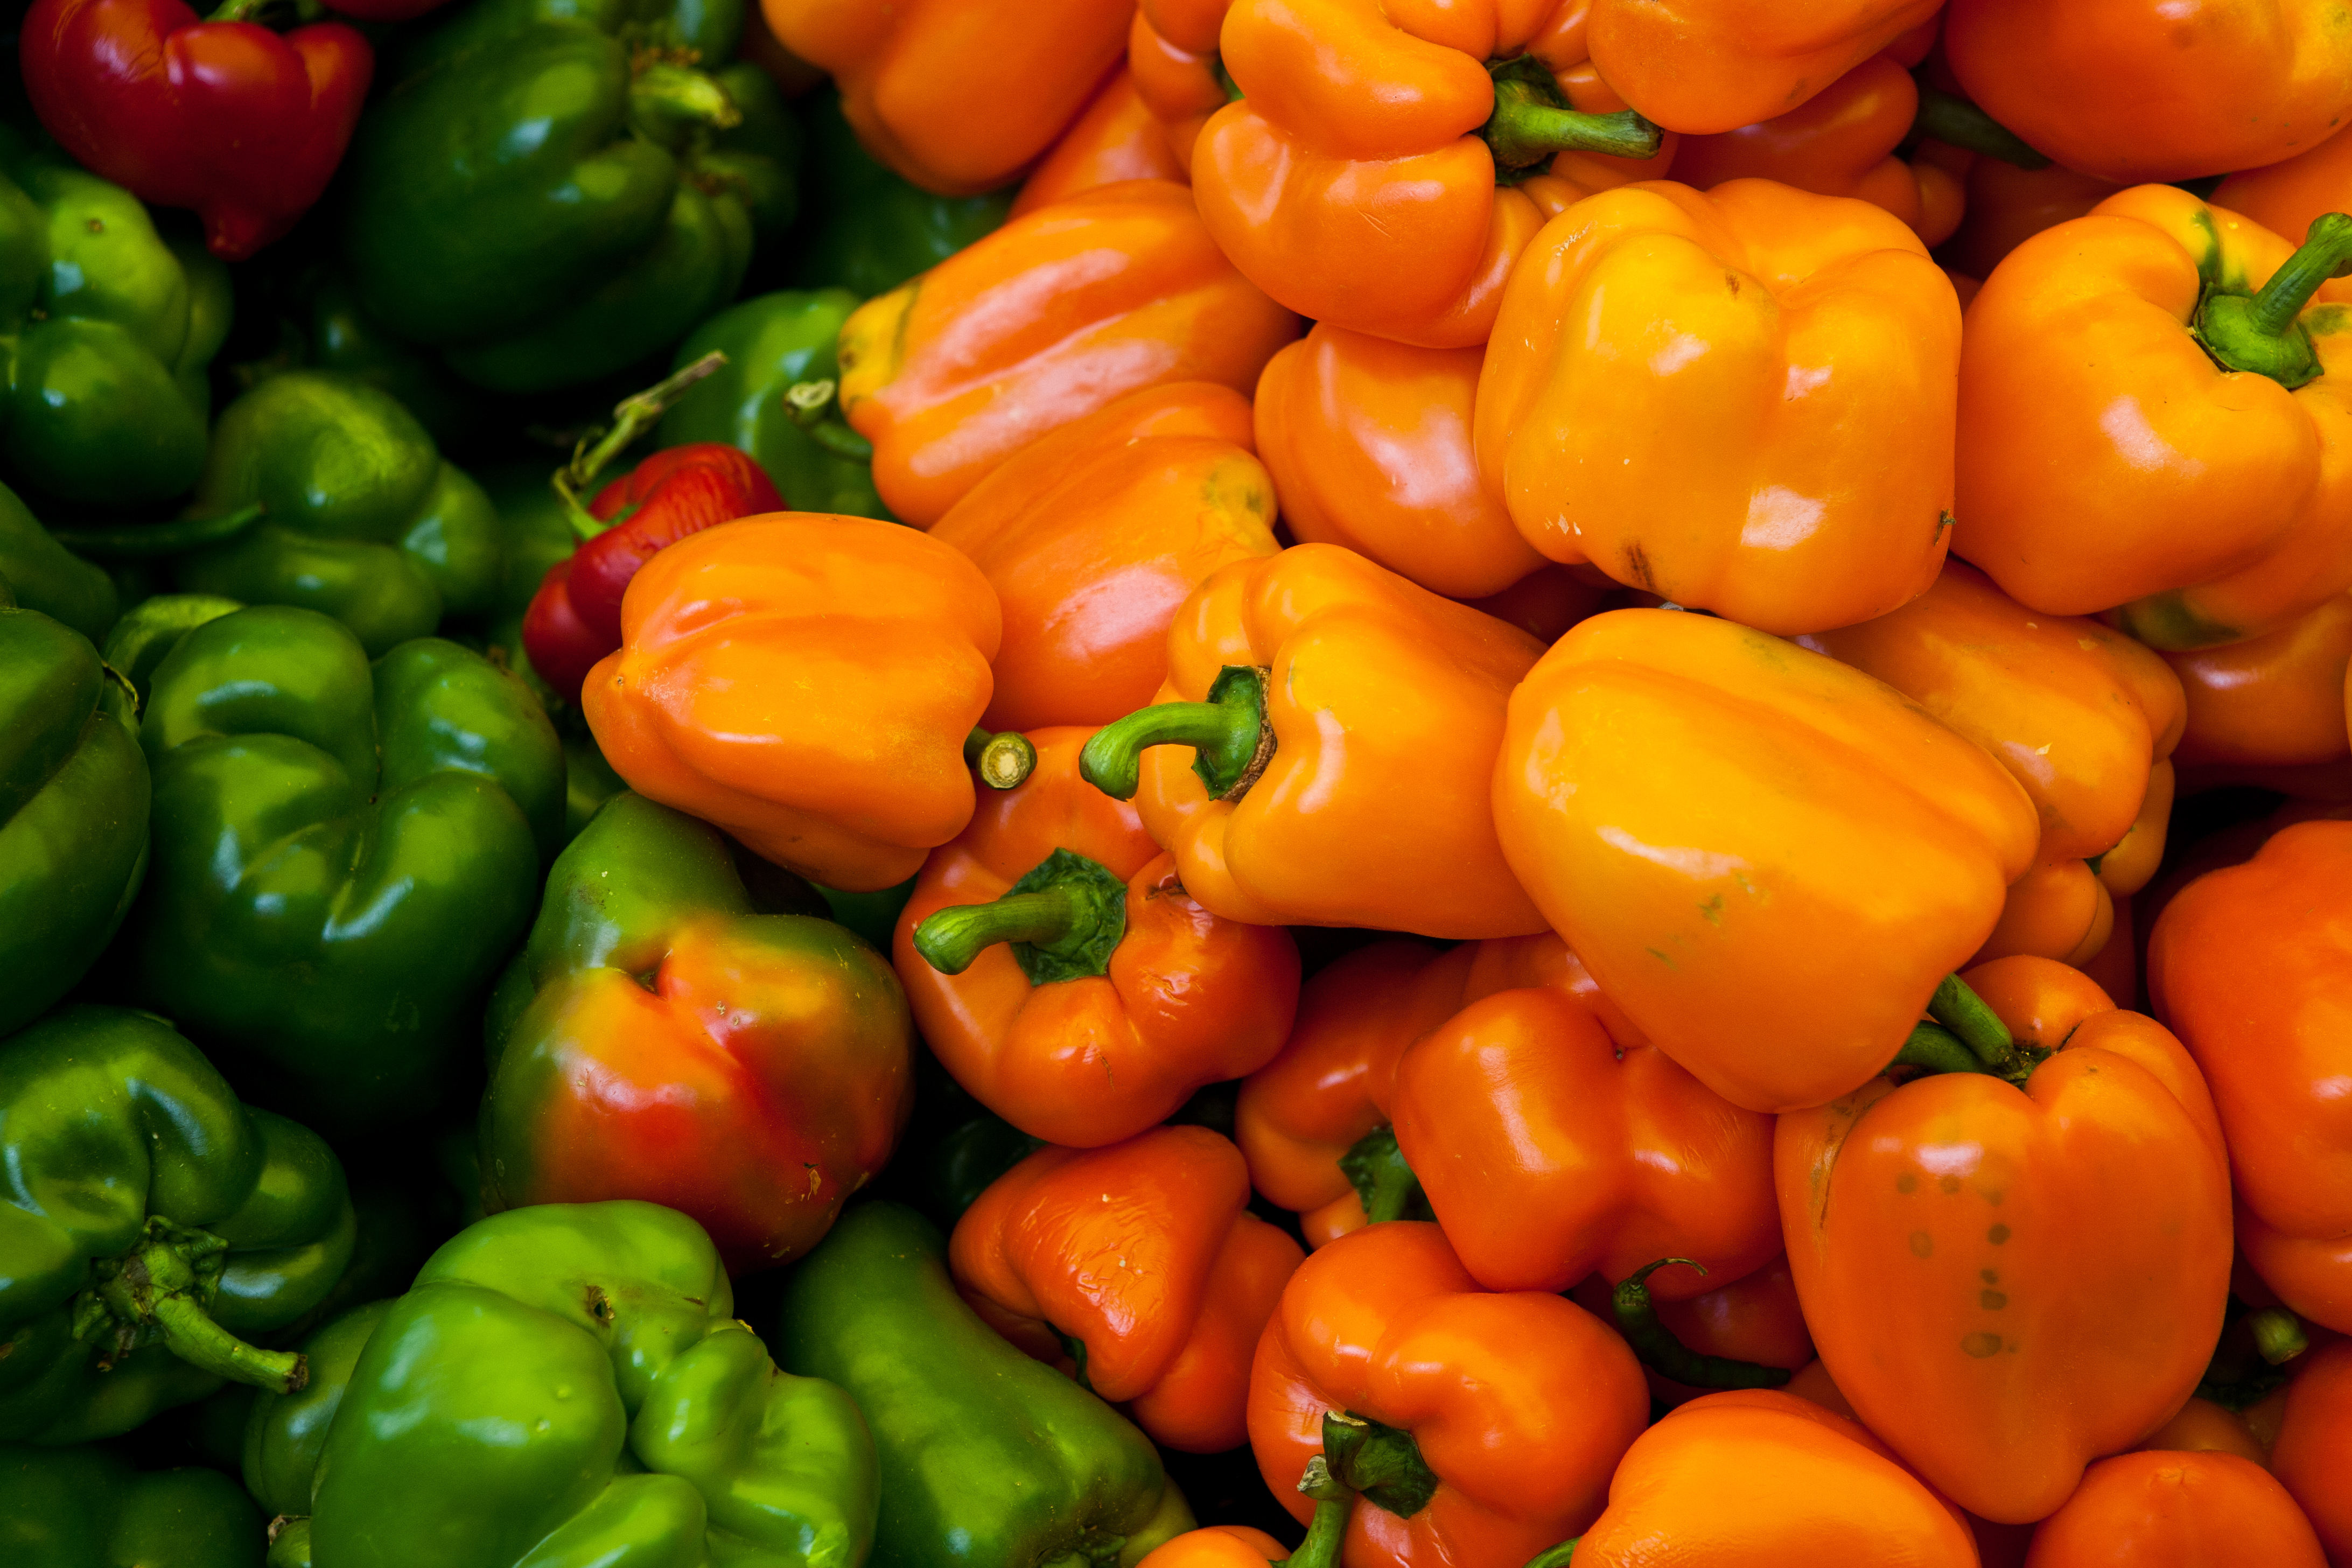 Chiles in Tenancingo Market